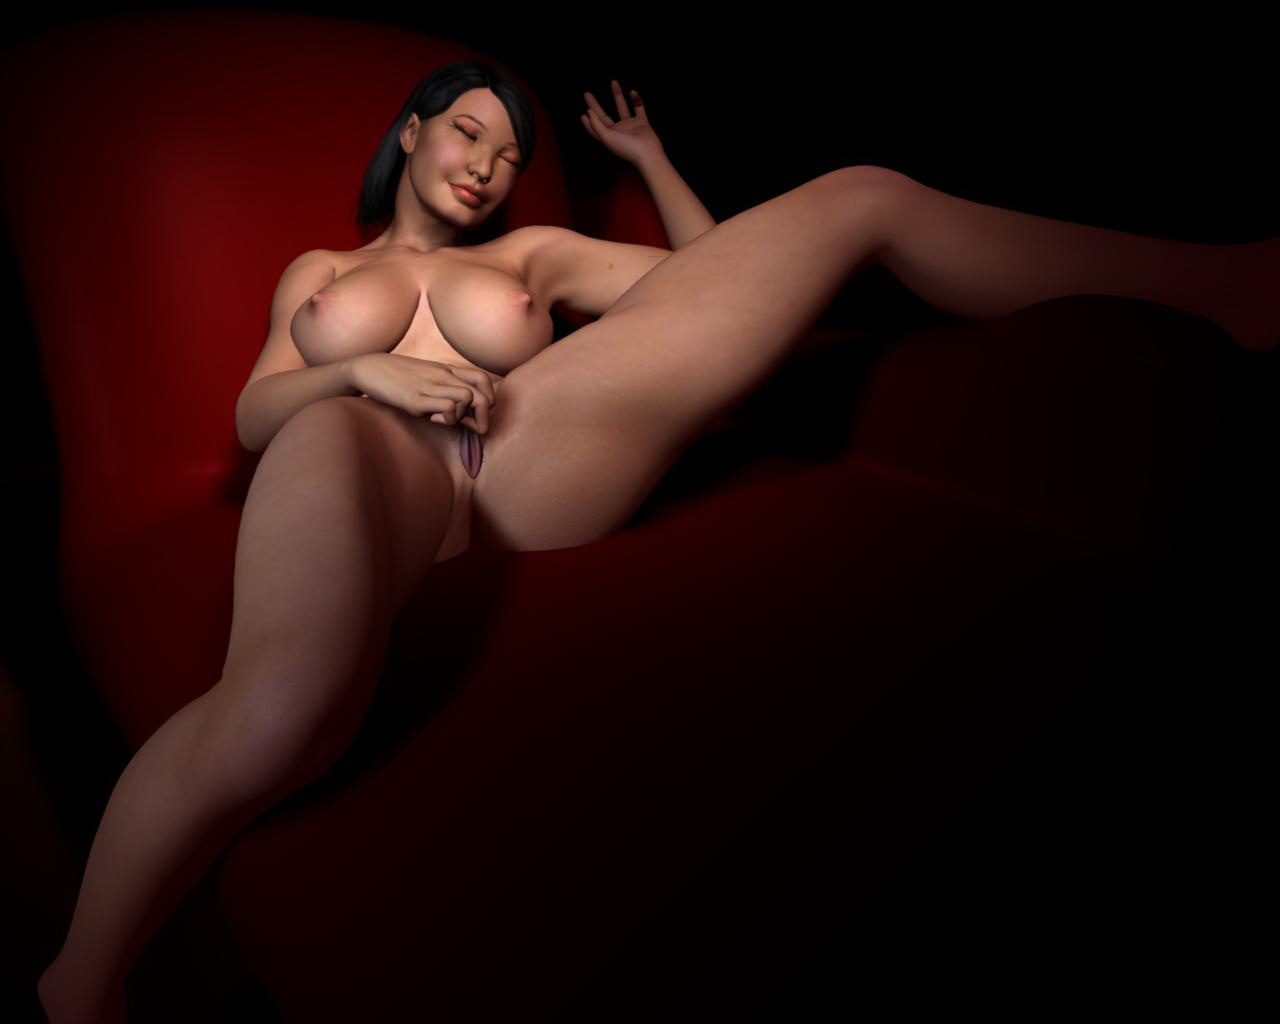 Hot sexy 3d animated naked girls hentai gallery